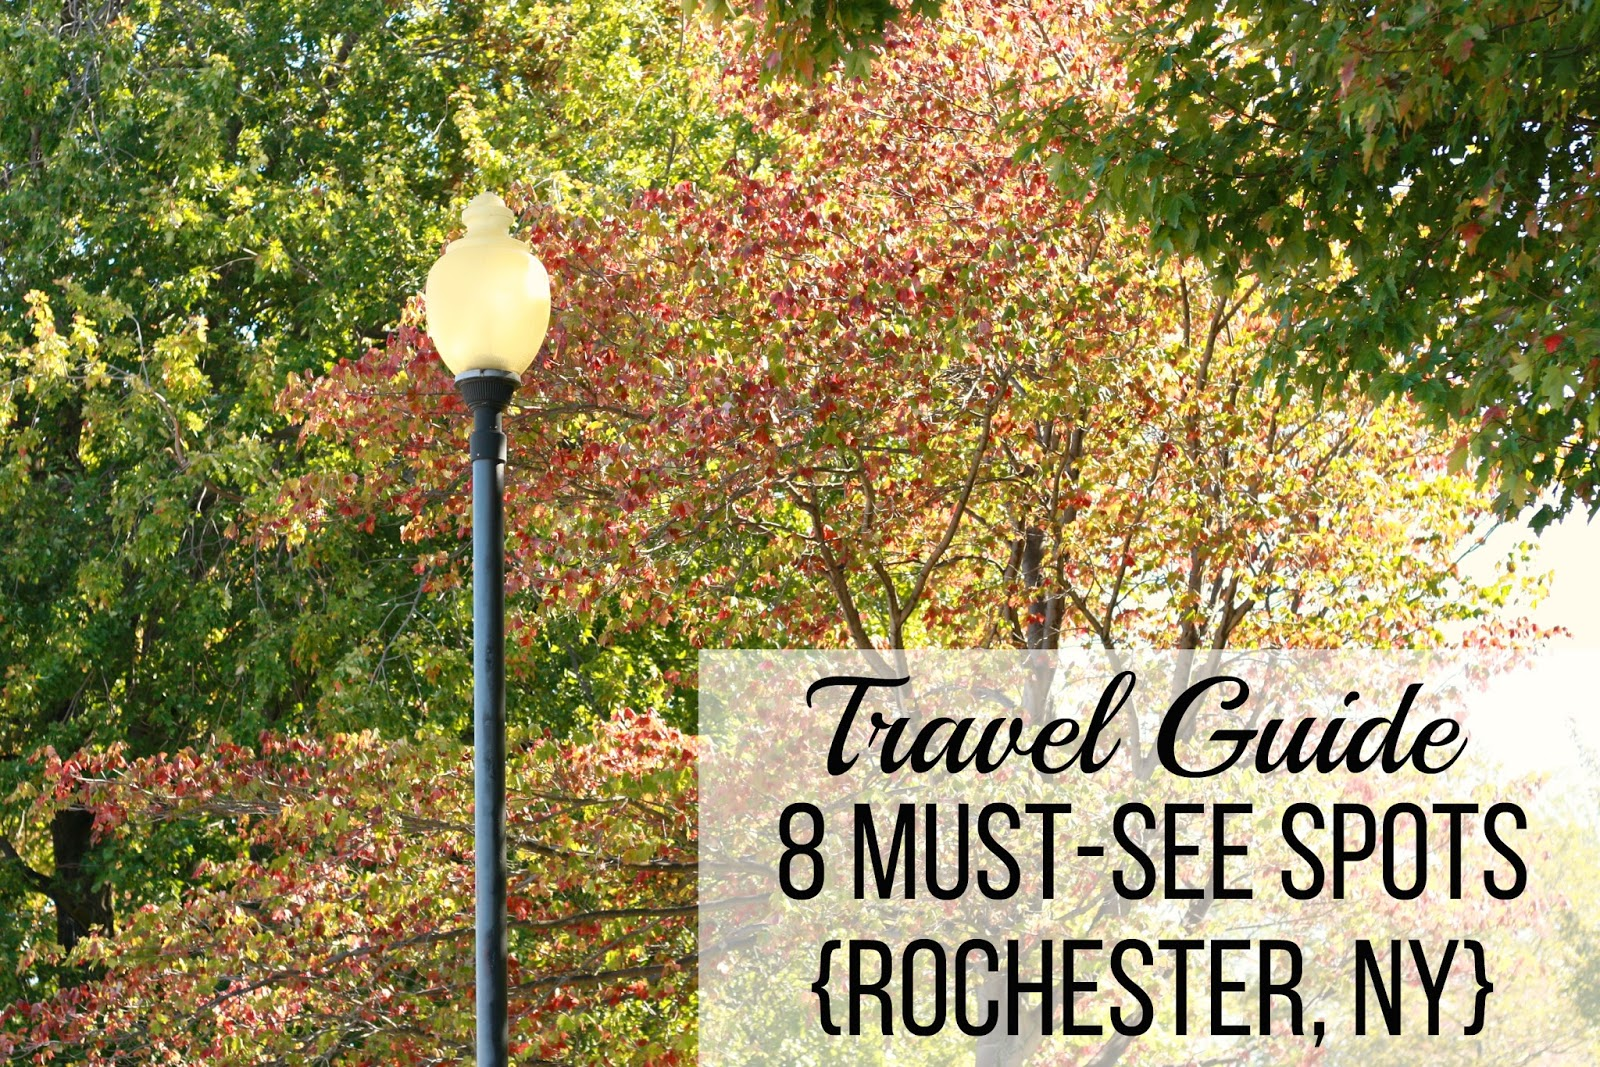 BG by Christina: Travel | Travel Guide 8 Must-See Spots {Rochester, NY}